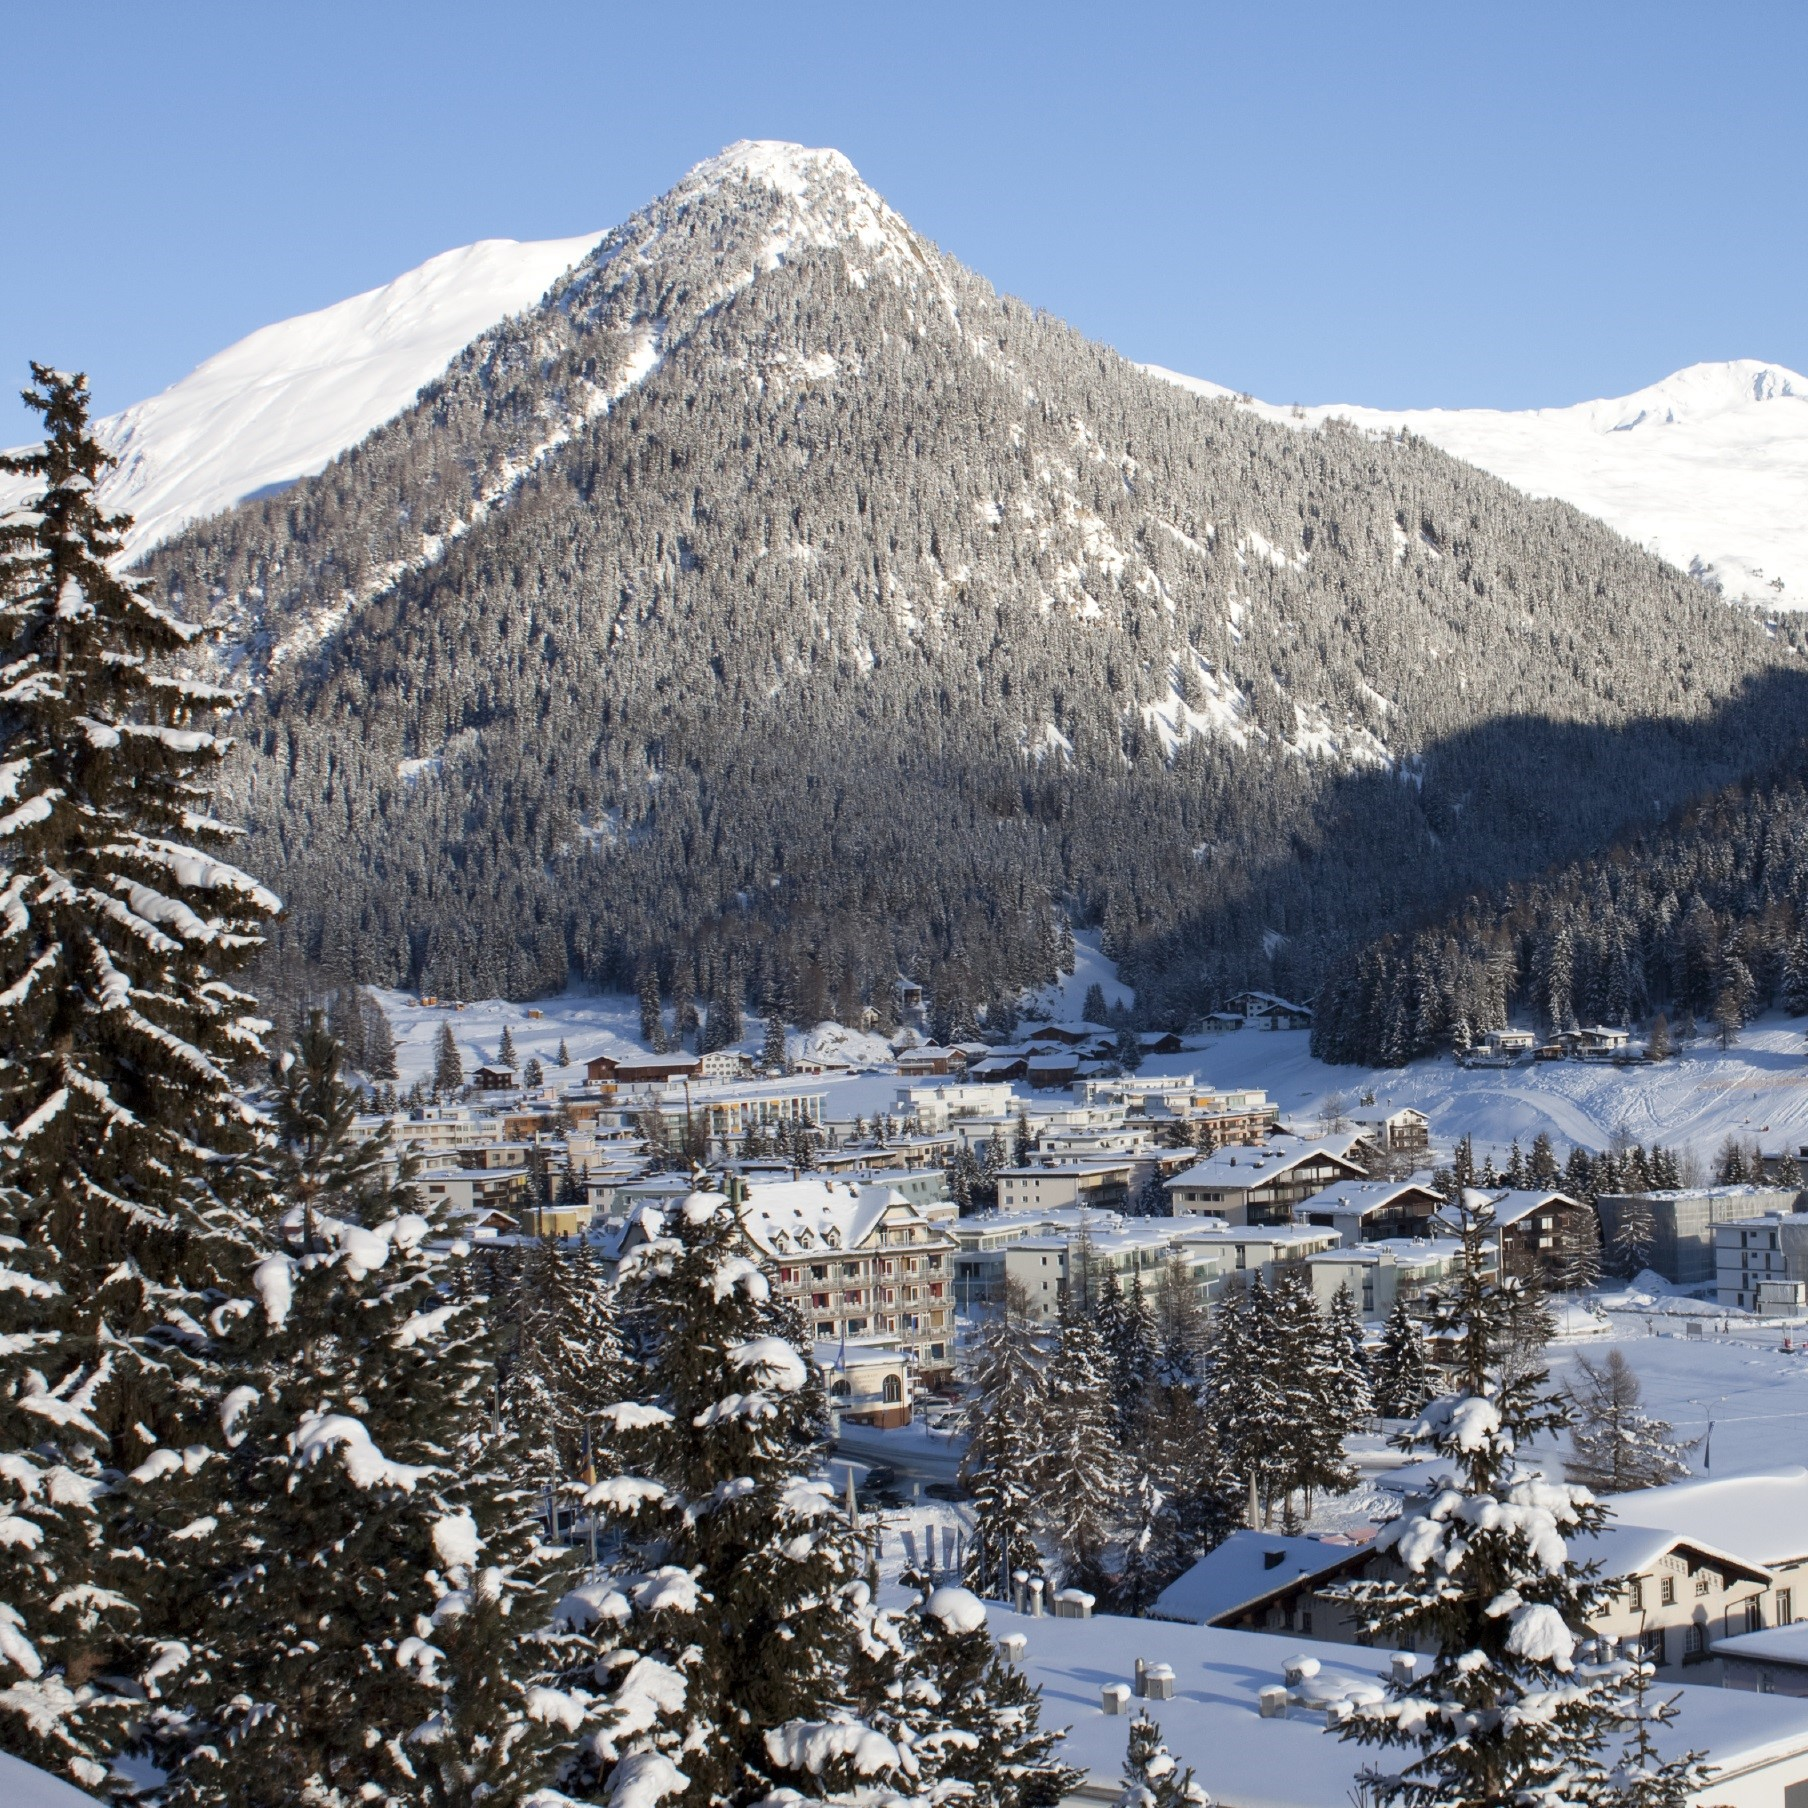 Global Views from the World Economic Forum at Davos, Switzerland